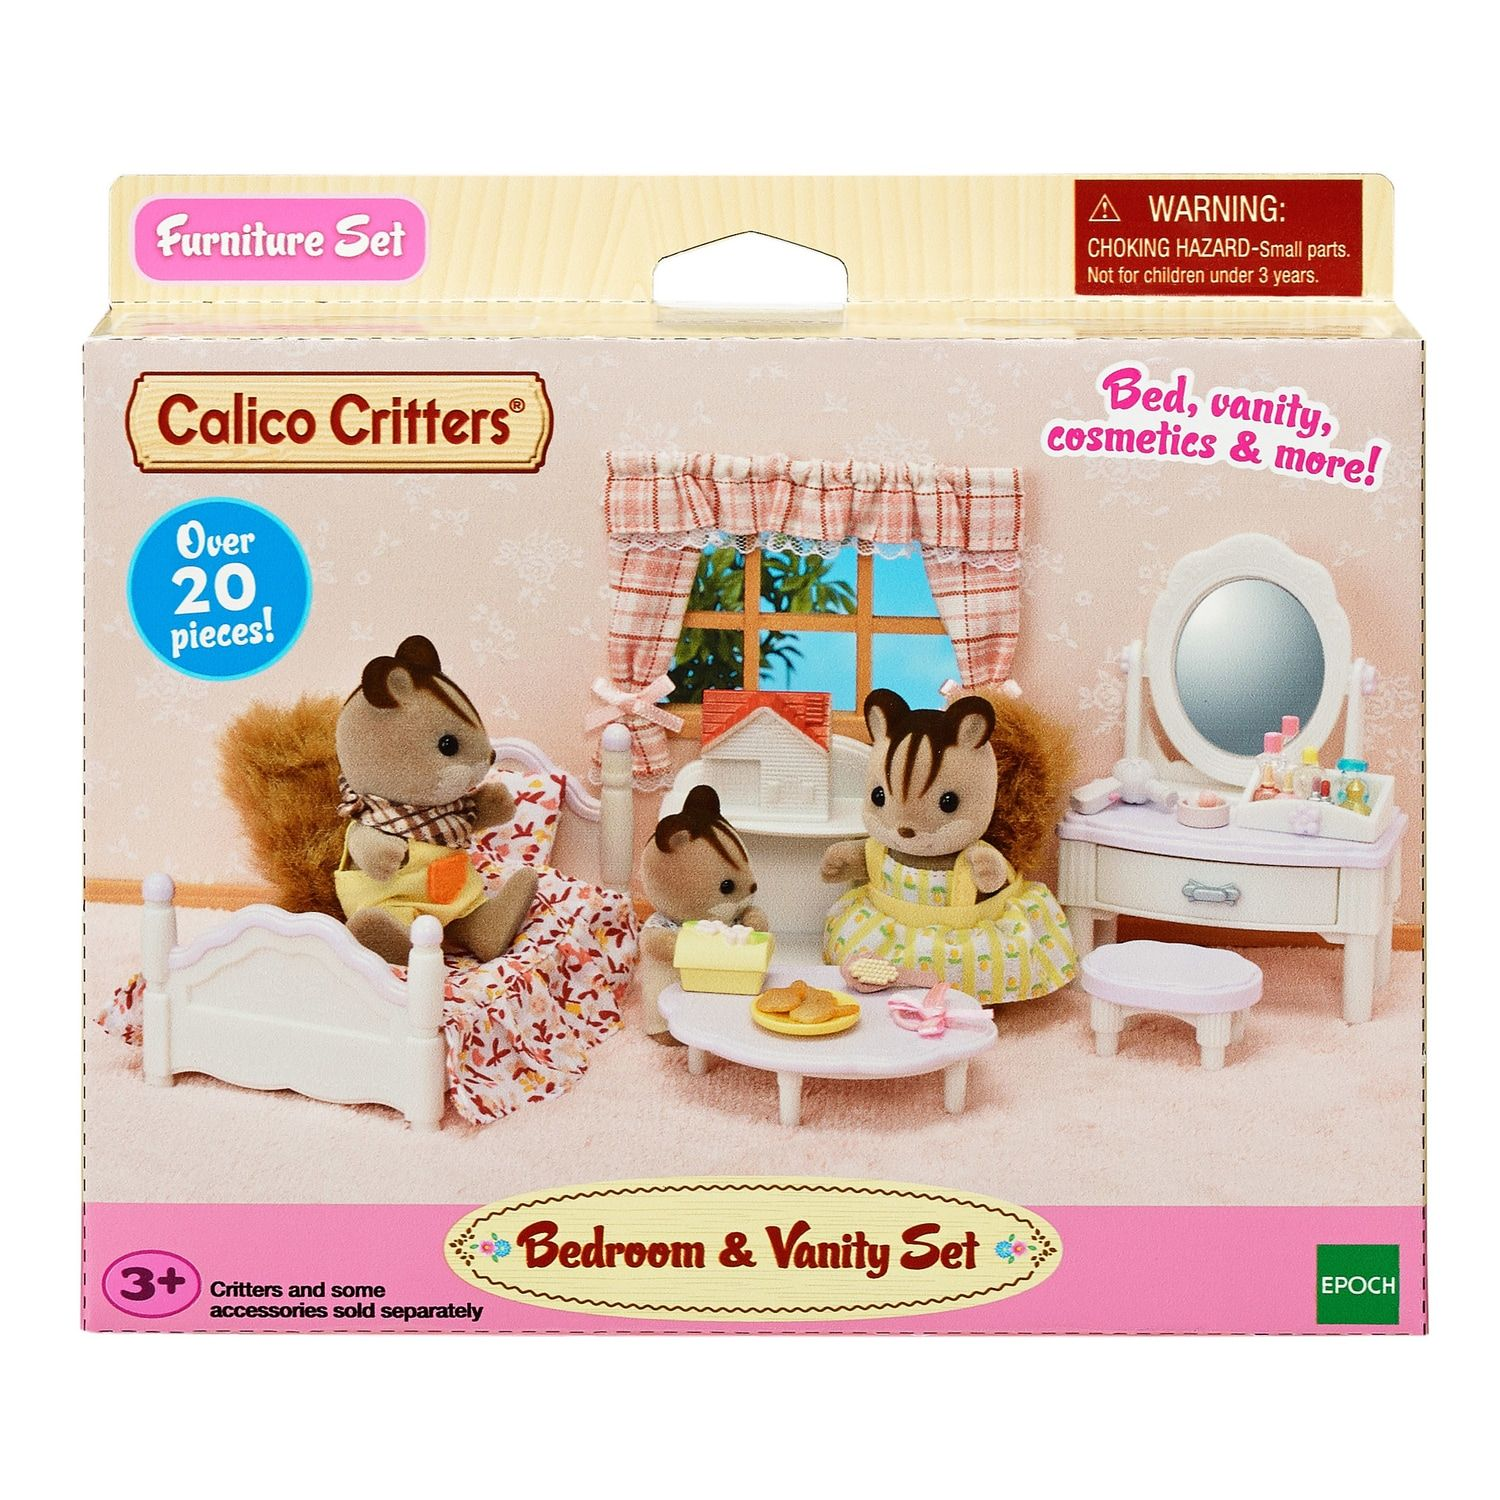 Calico Critters Bedroom And Vanity Affiliate Critters,